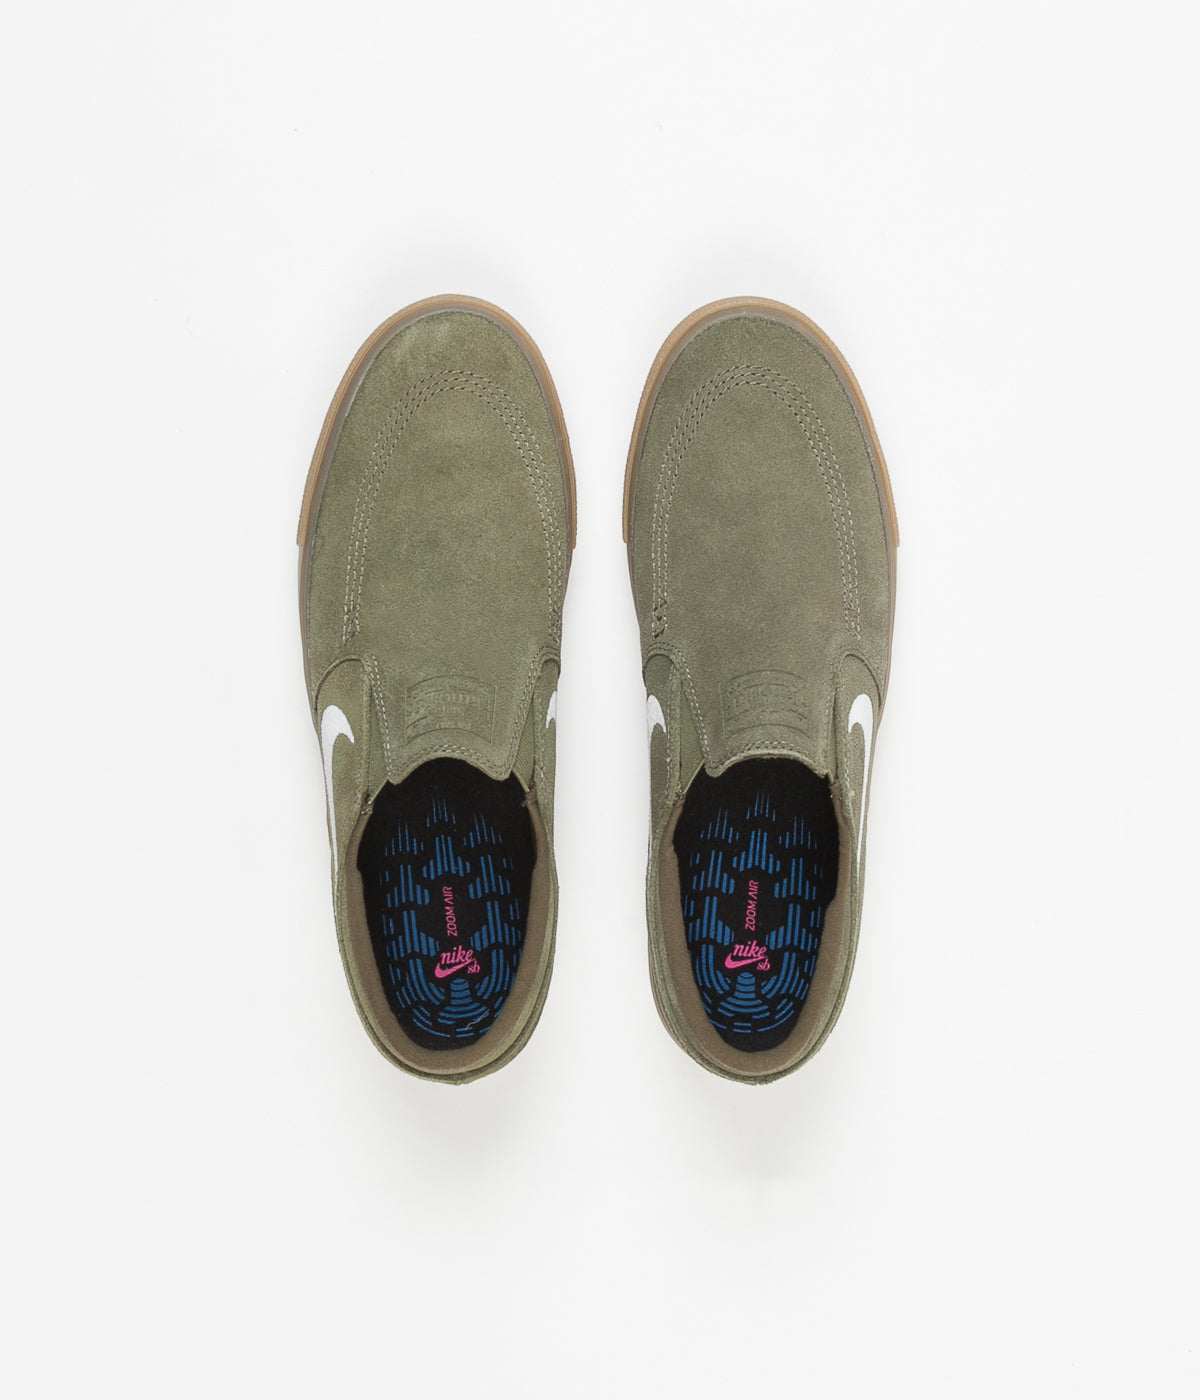 premium selection c5405 1d0a6 Nike SB Janoski Slip On Remastered Shoes - Medium Olive ...